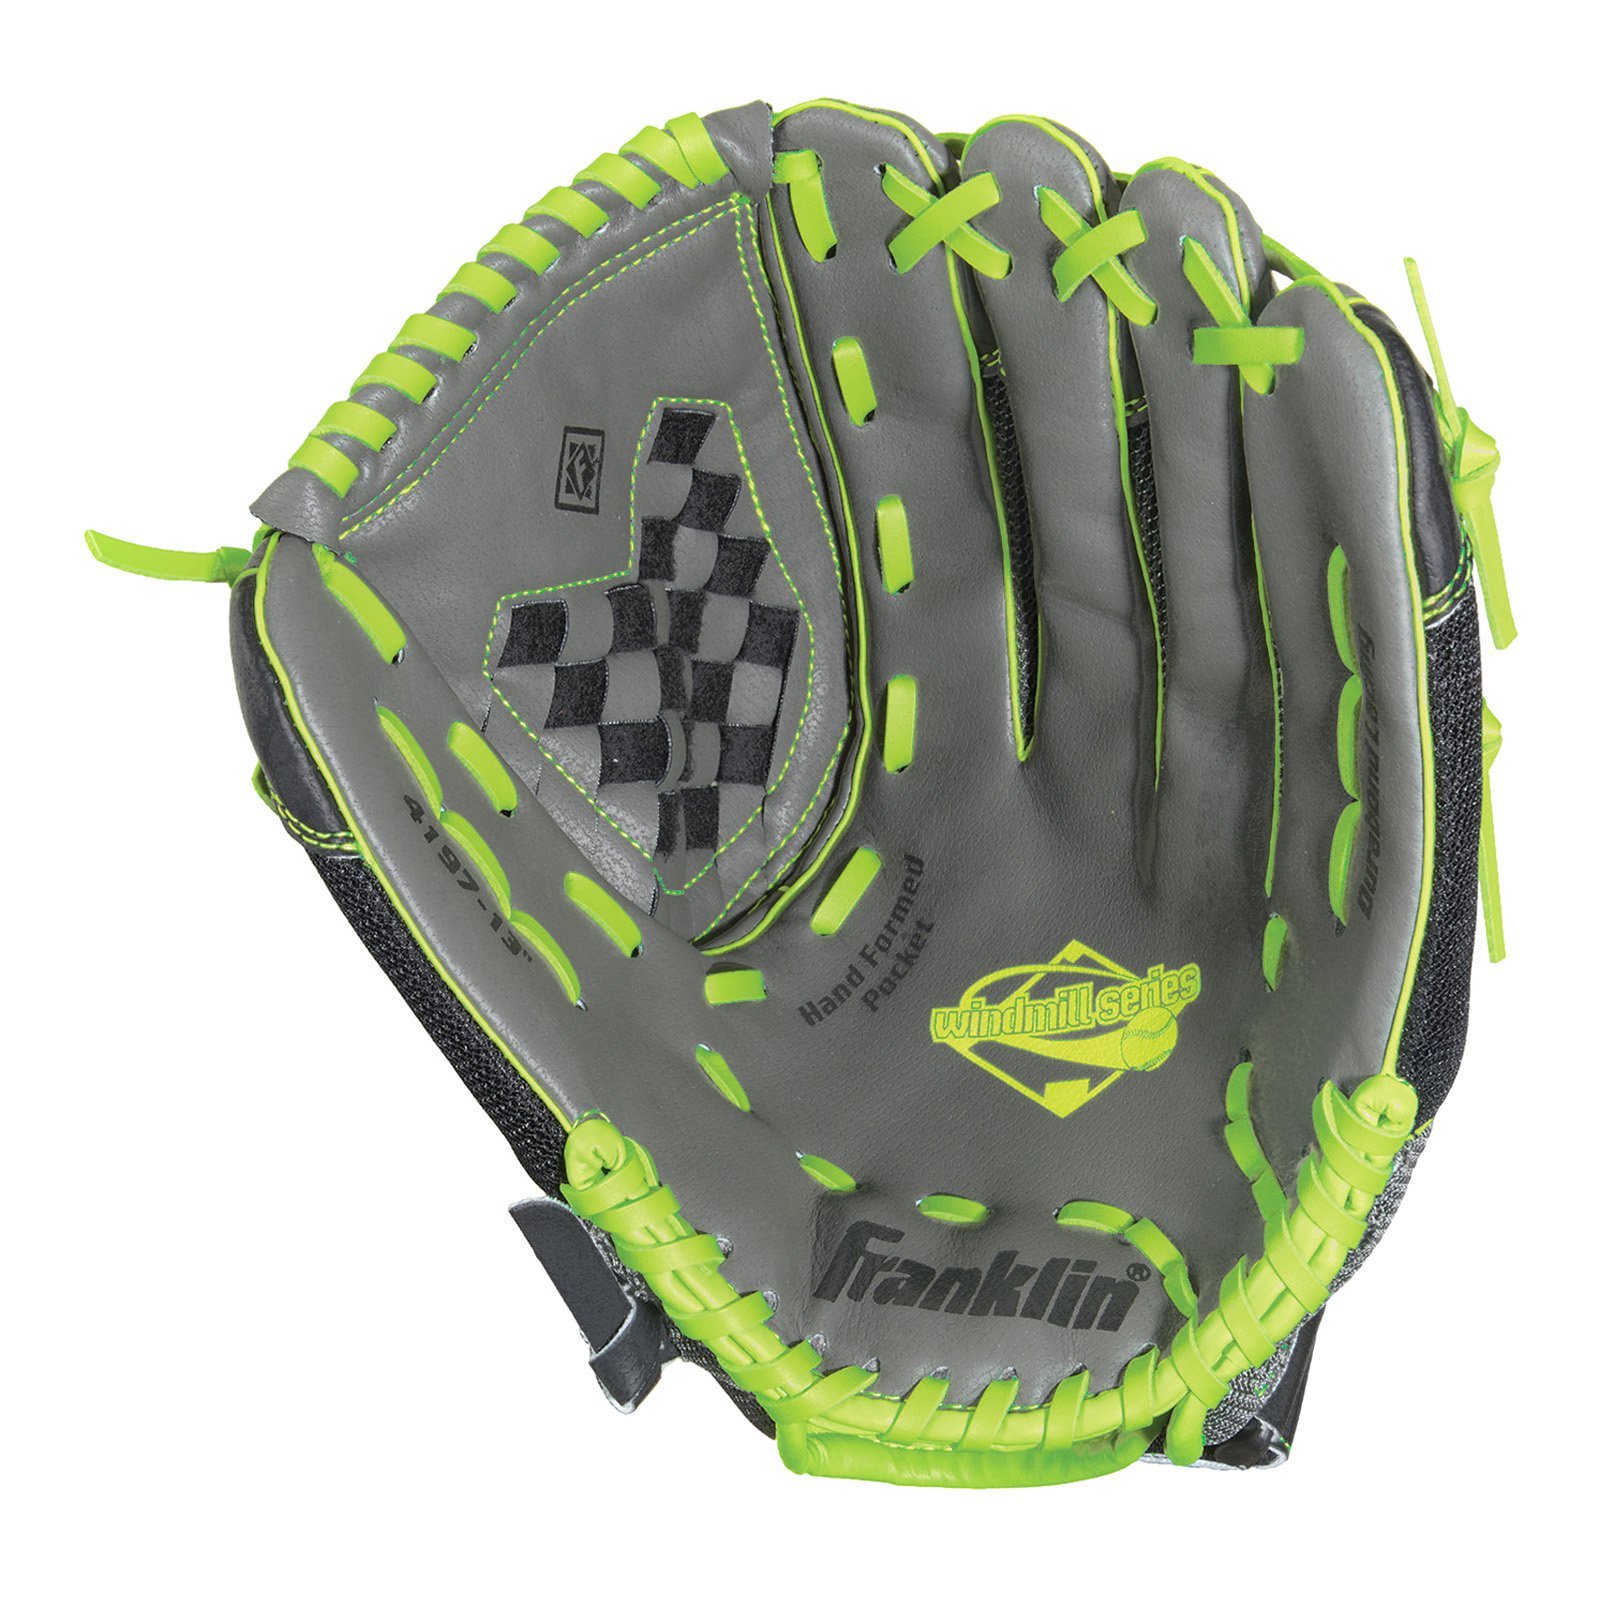 "Franklin Sports 11.0"" Mesh PVC Windmill Series Left Handed Thrower Softball Glove by Franklin Sports"